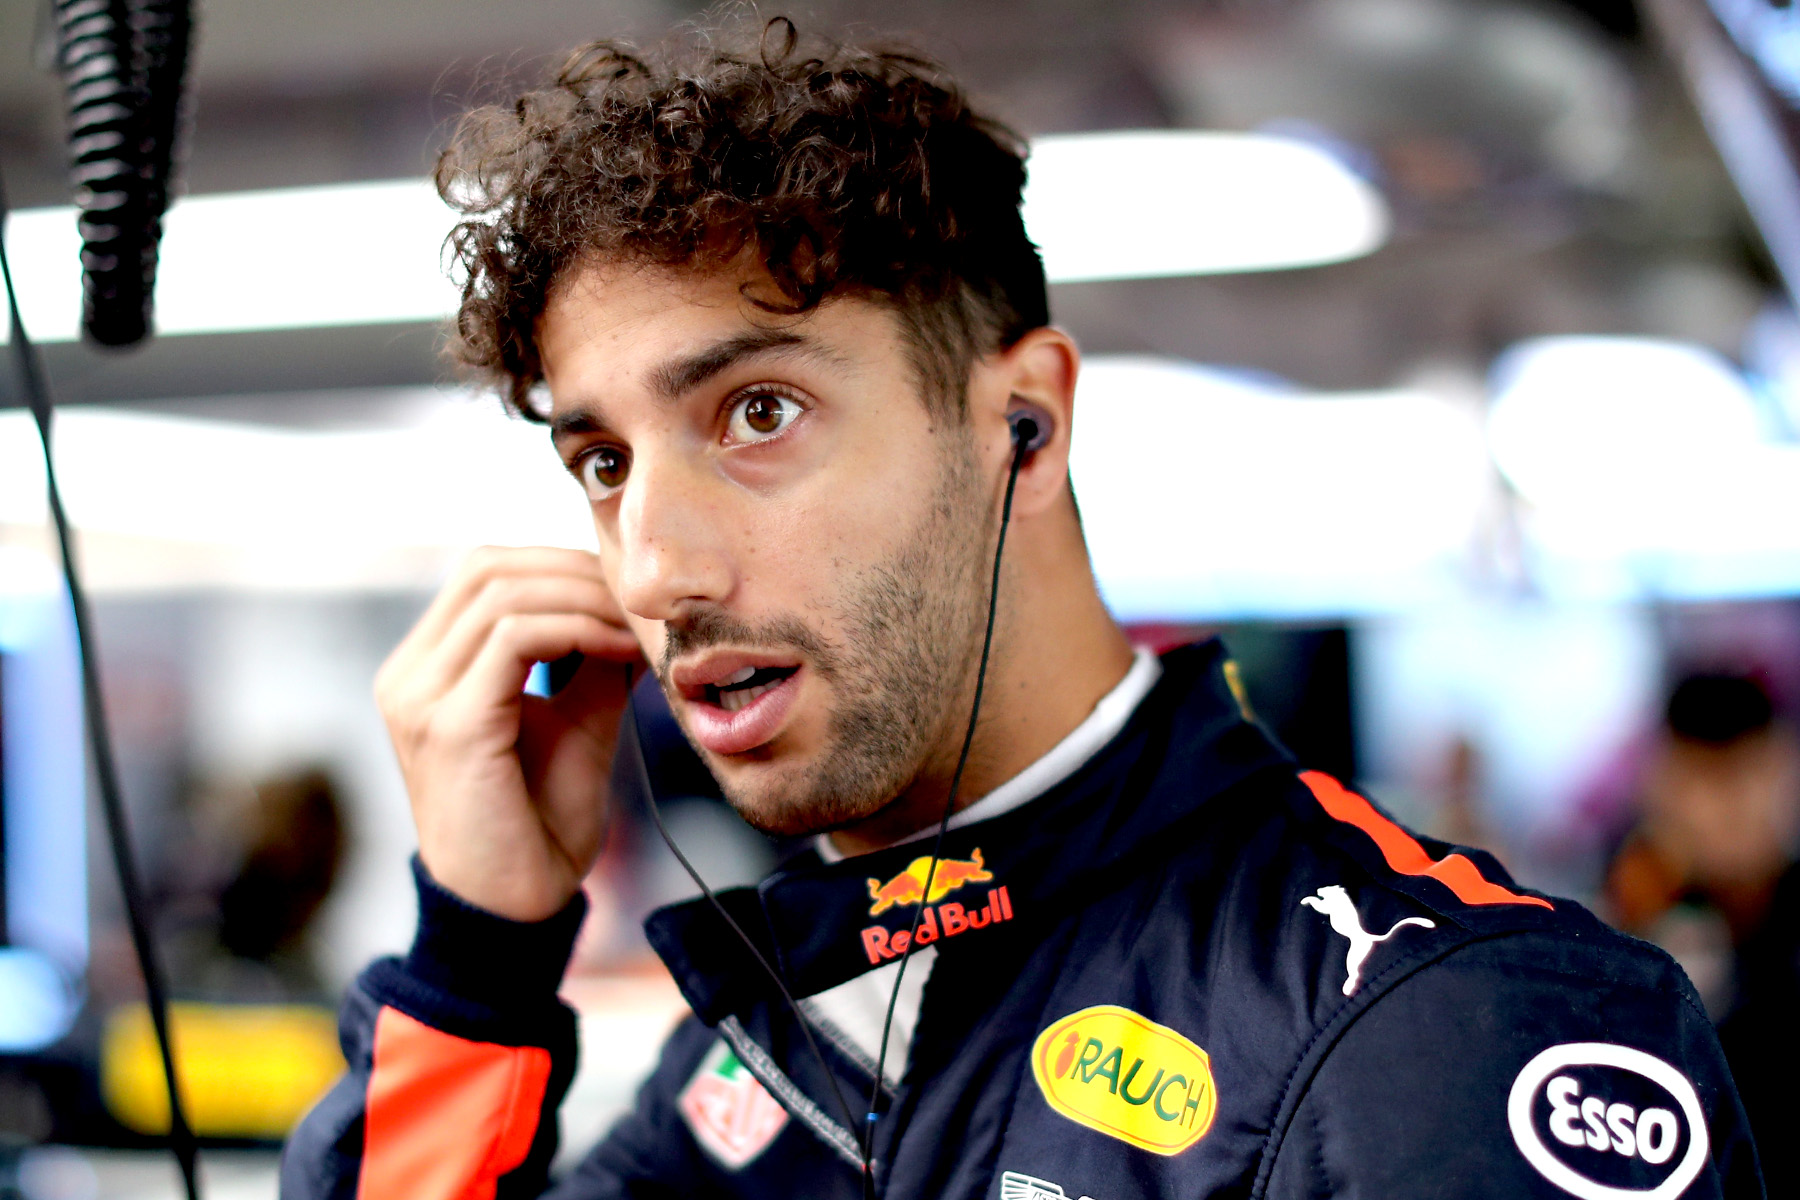 Daniel Ricciardo in his garage at the 2017 Japanese Grand Prix.